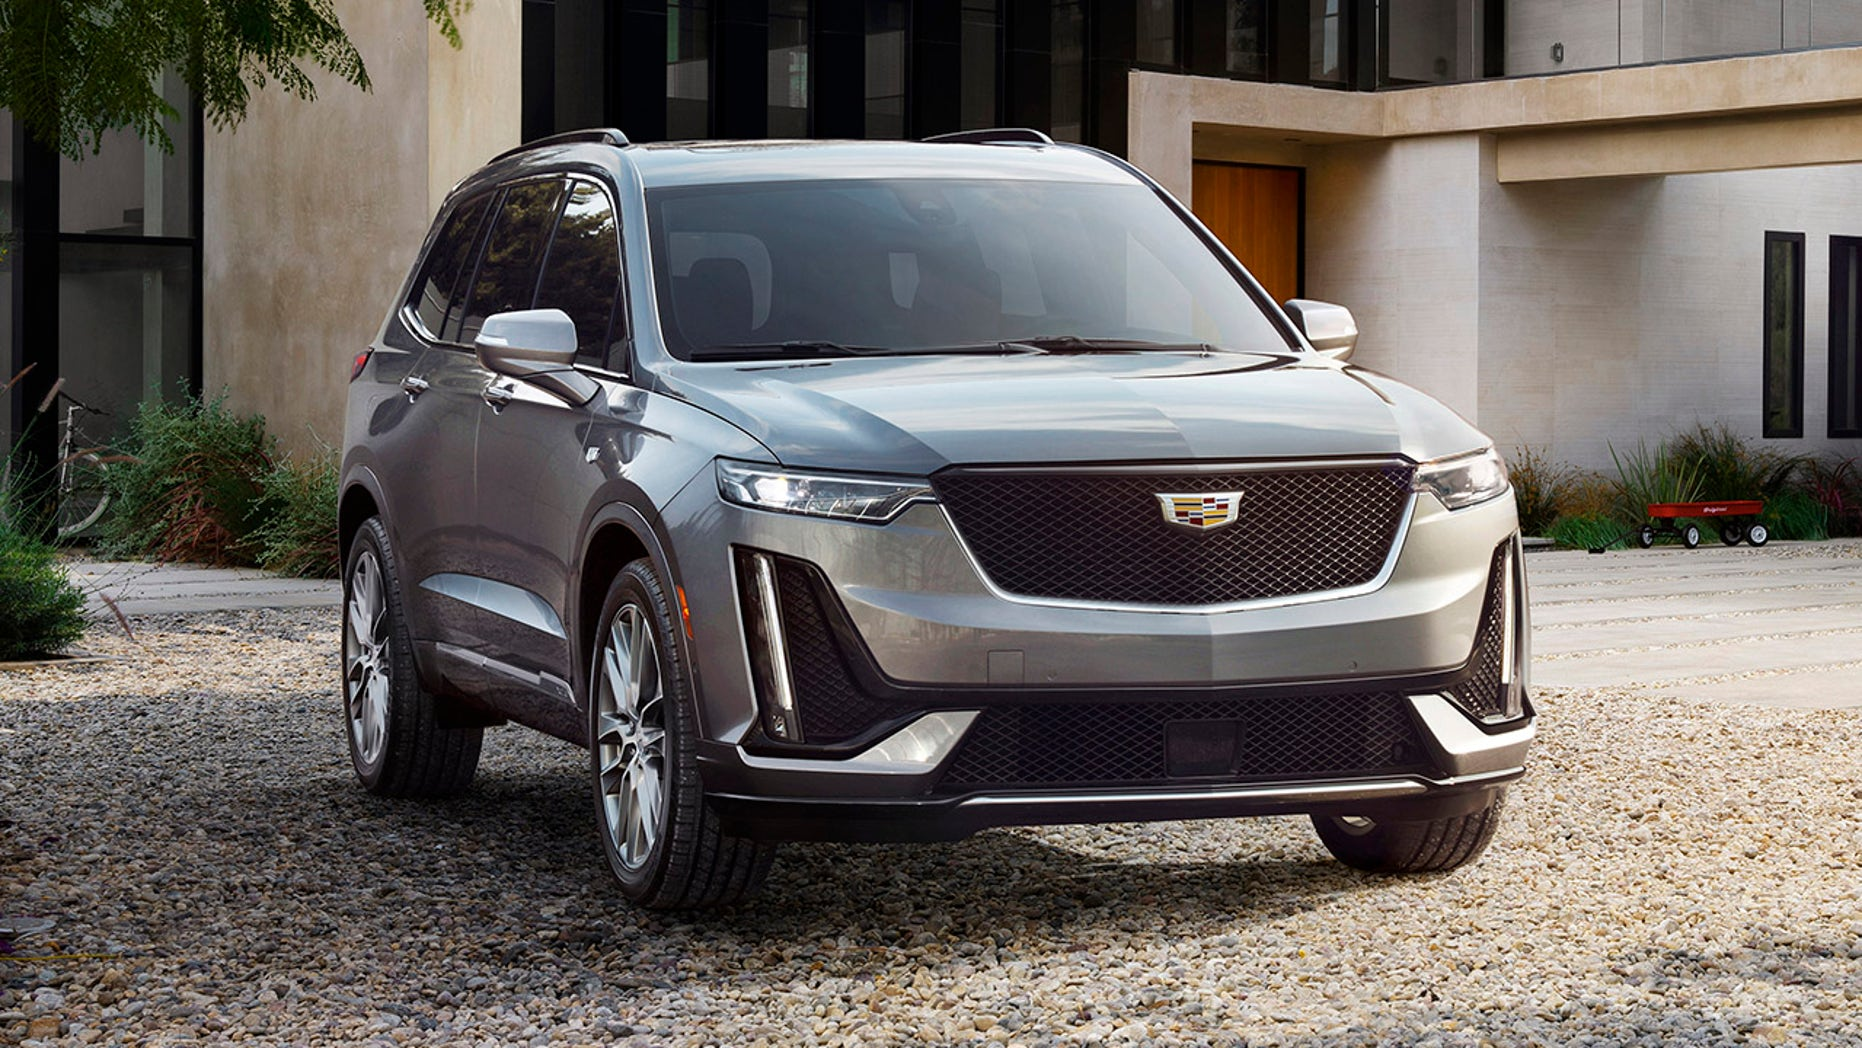 Cadillac shows off its nameless-for-now first full electric